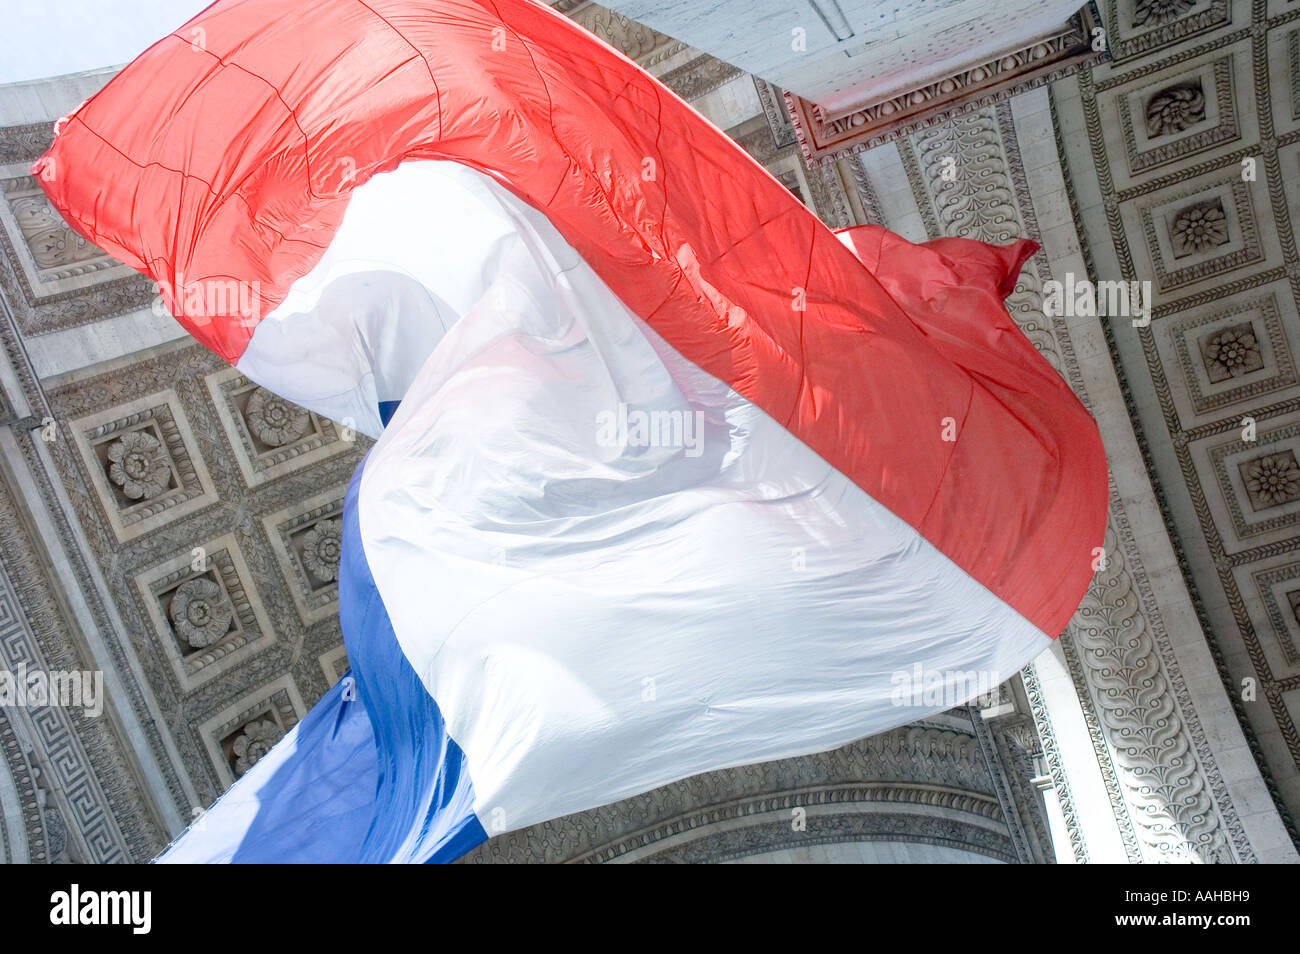 French tri-colour flies beneath the Arc de Triomphe in Paris, France - Stock Image